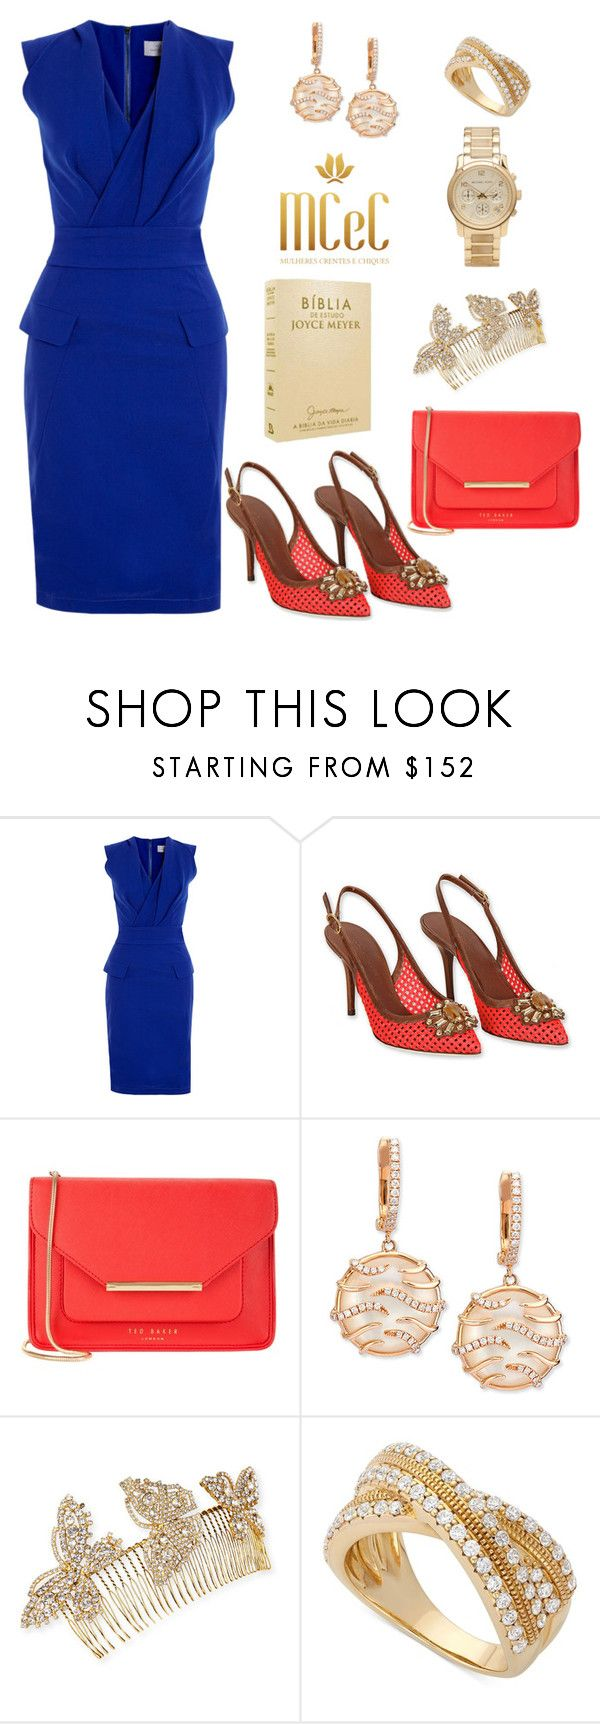 """""""Look #181"""" by mulherescrentesechiques on Polyvore featuring moda, Preen, Dolce&Gabbana, Ted Baker, Frederic Sage, Jennifer Behr, Wrapped In Love e Michael Kors"""